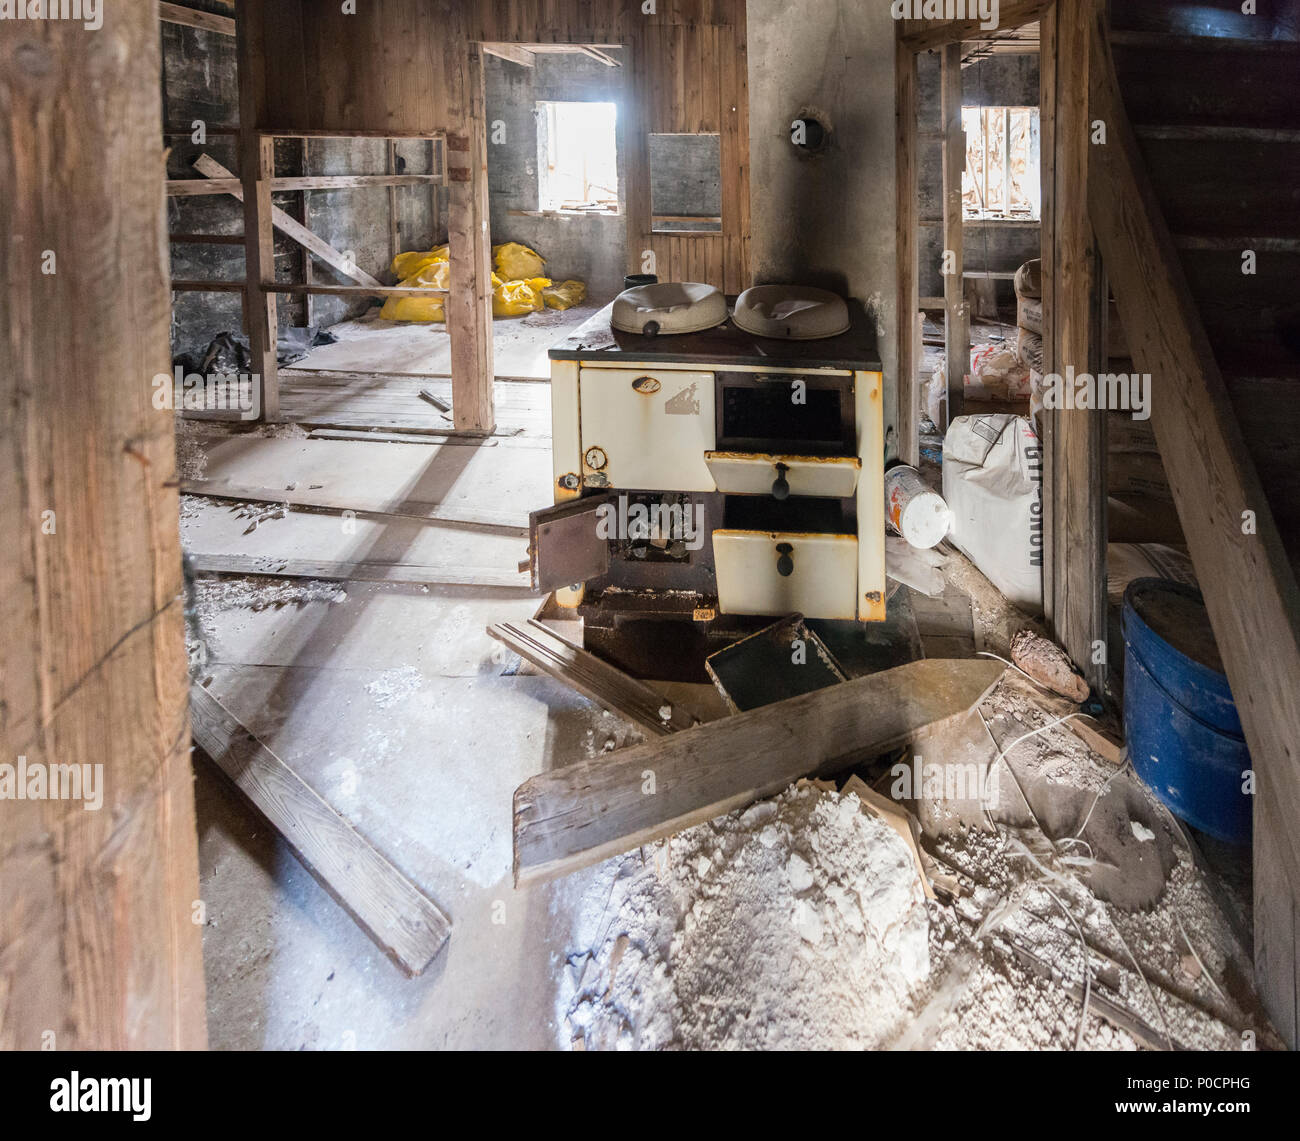 Old house, farm, room with oven and rubble, dilapidated and dilapidated, Iceland - Stock Image